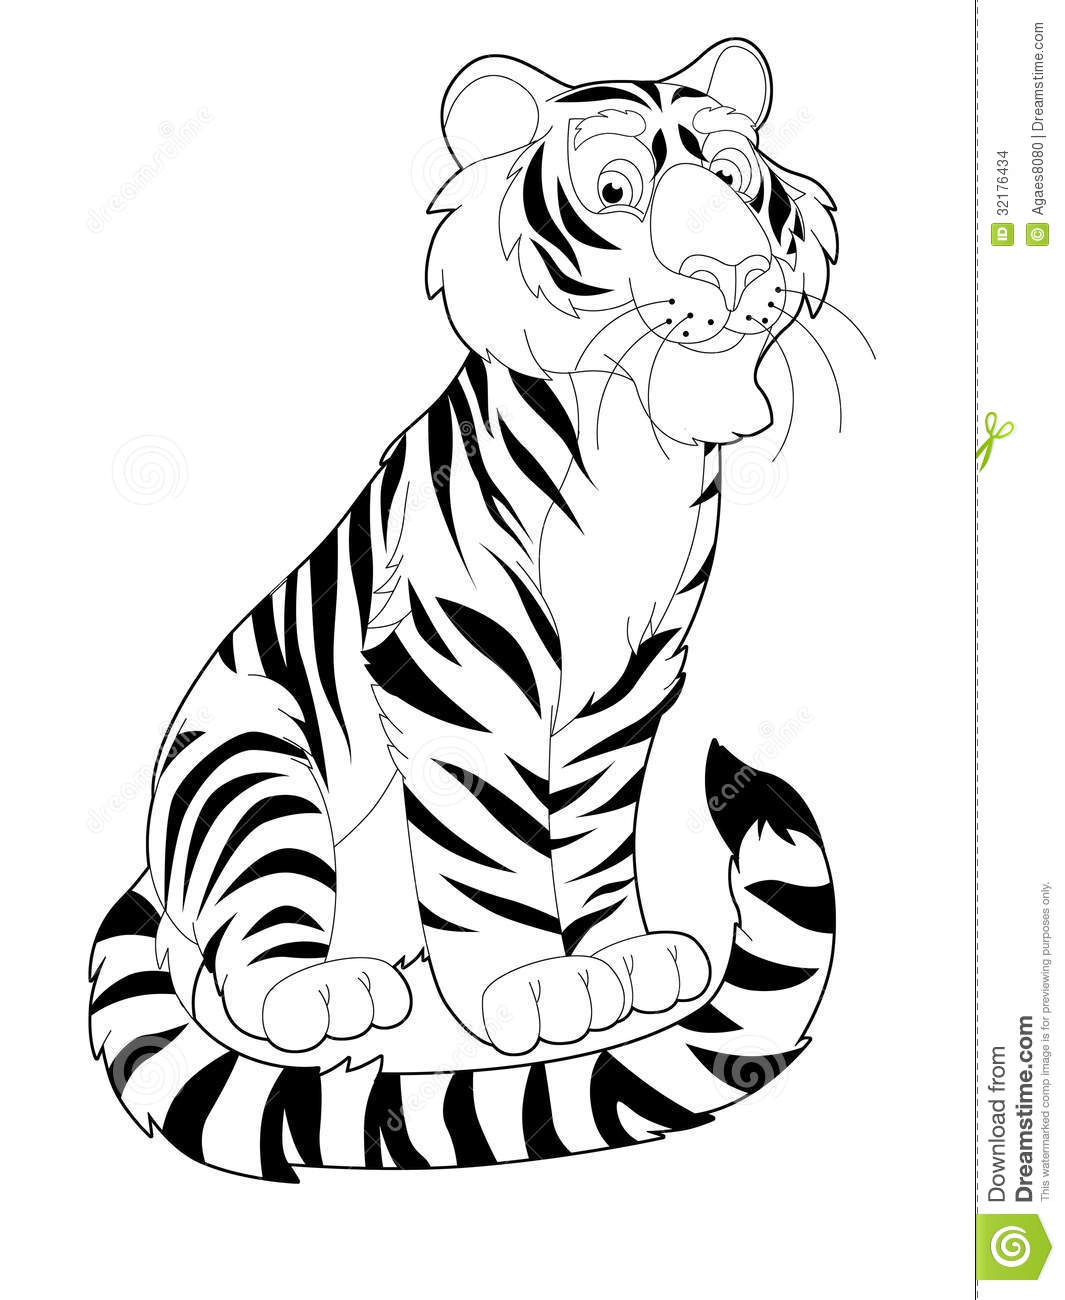 cartoon safari coloring page illustration for the children - Safari Coloring Pages